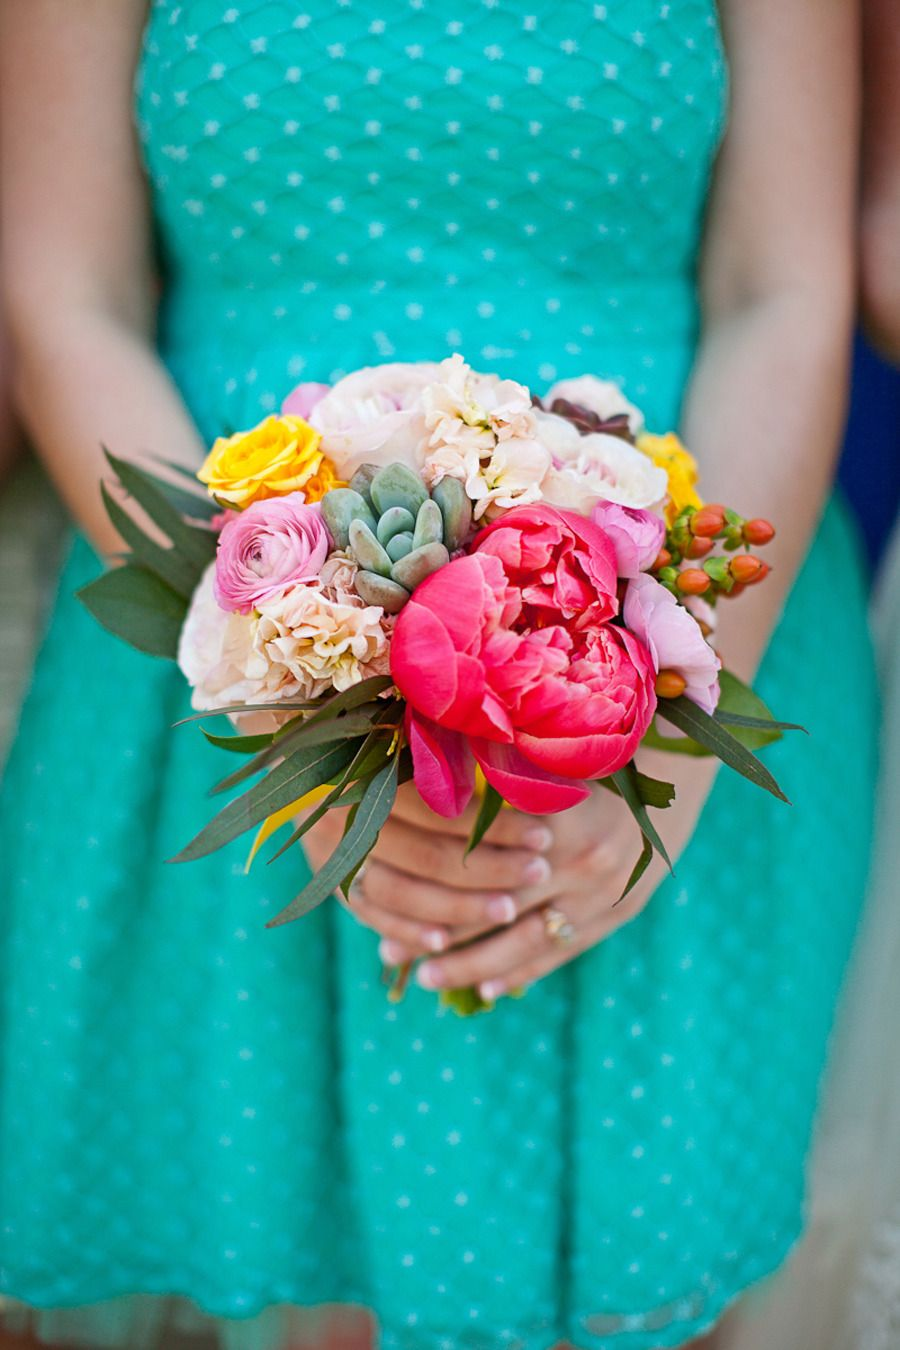 Colorful bridesmaid bouquet | Read More: http://www.stylemepretty.com/little-black-book-blog/2014/08/19/colorful-classic-north-carolina-wedding/ | Photography: Anna Paschal Photography - www.annapaschalphotography.com